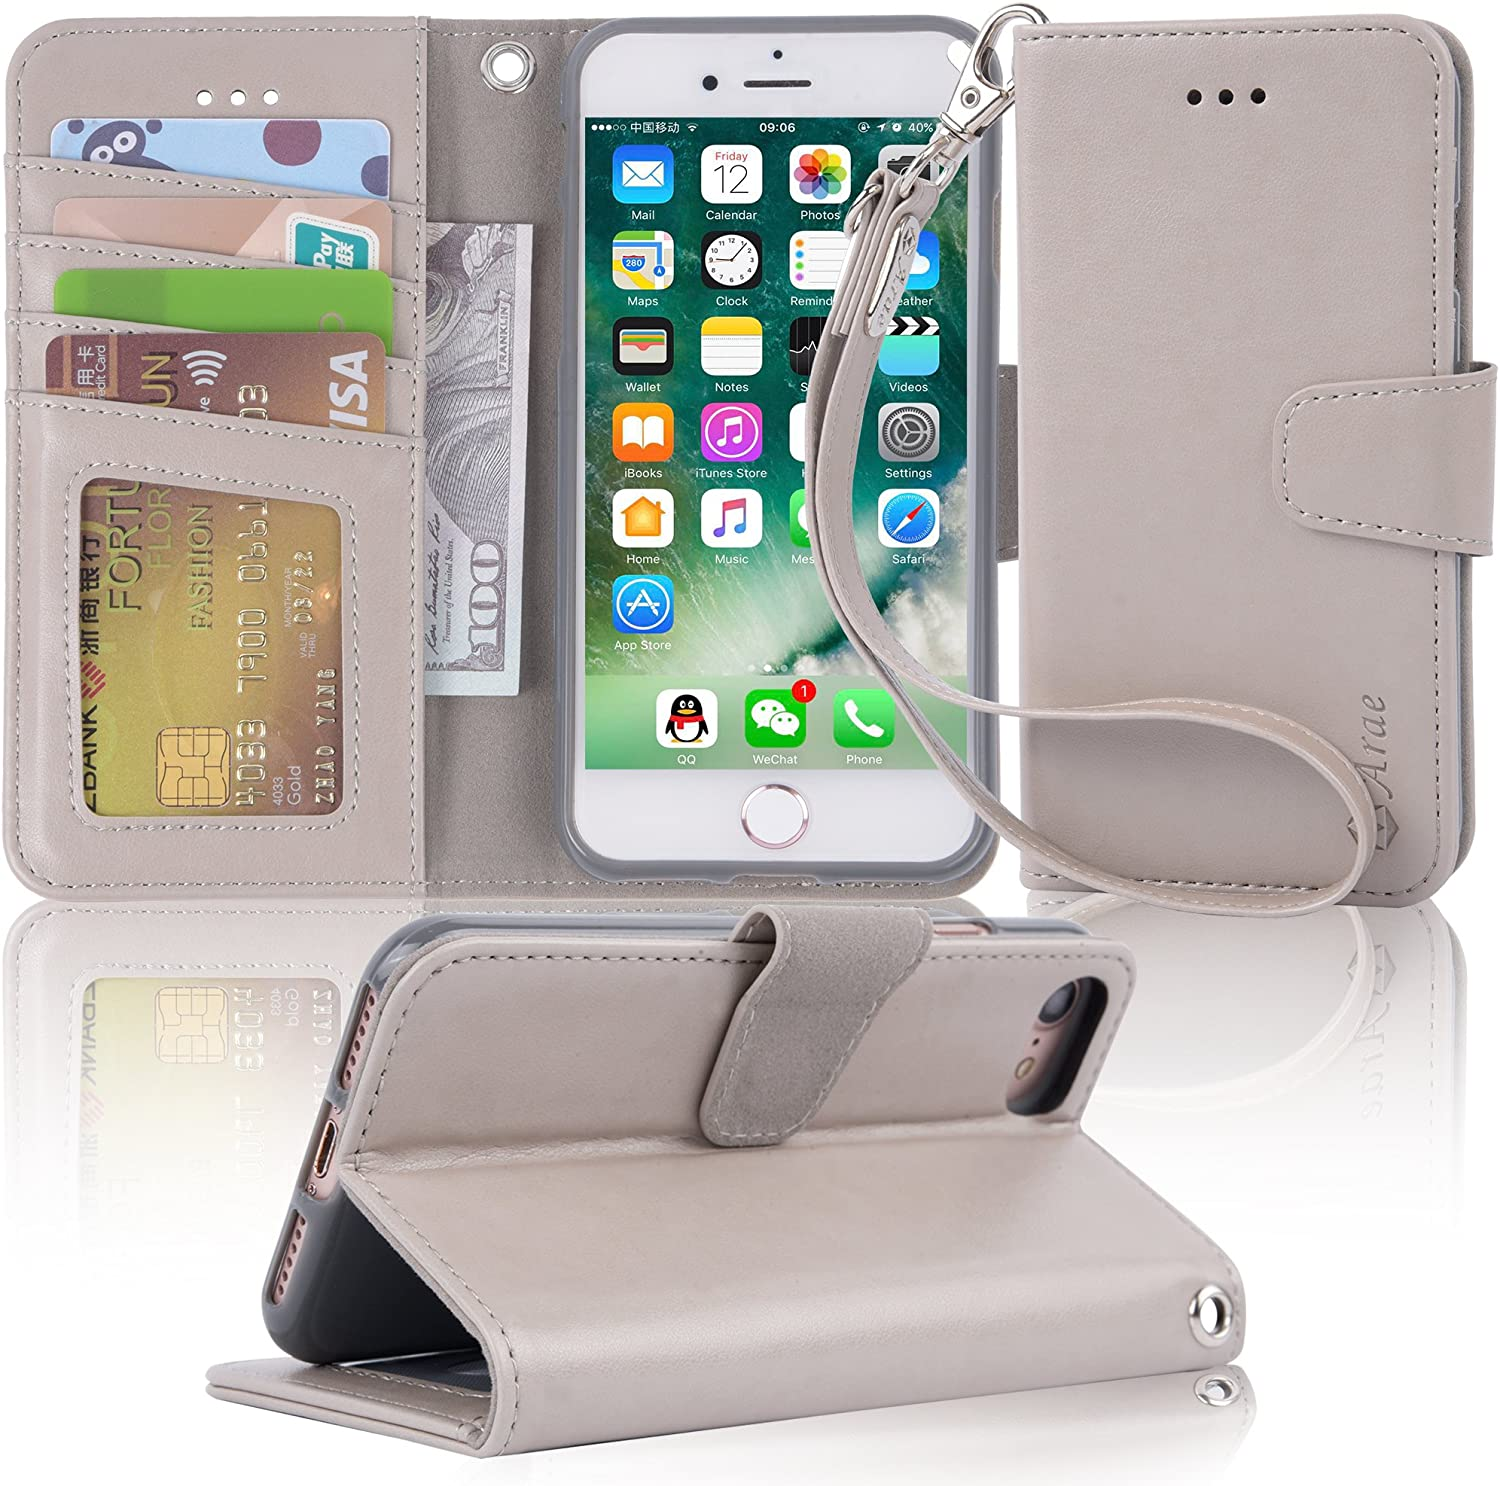 Arae Case for iPhone 7 / iPhone 8 / iPhone SE 2020, Premium PU Leather Wallet Case with Kickstand and Flip Cover for iPhone 7 / iPhone 8 / iPhone SE 2nd Generation 4.7 inch - Light Grey